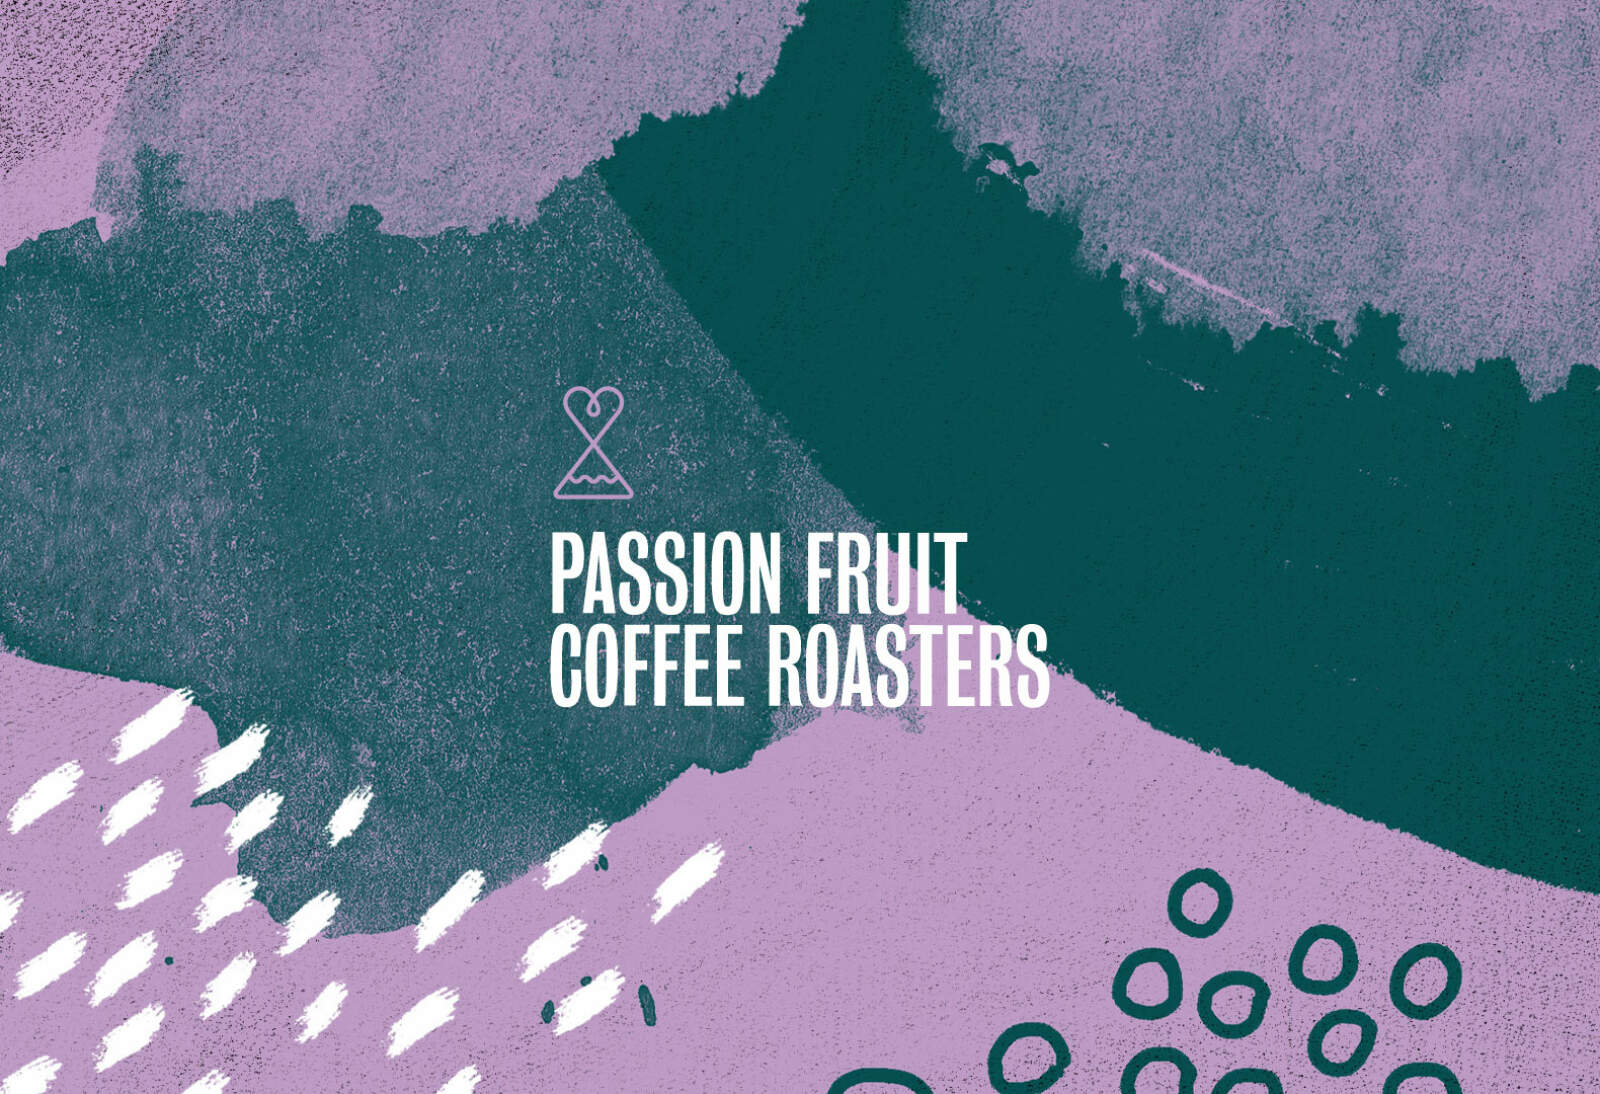 Passion Fruit branding design system components — patterned background, logo marque and type.